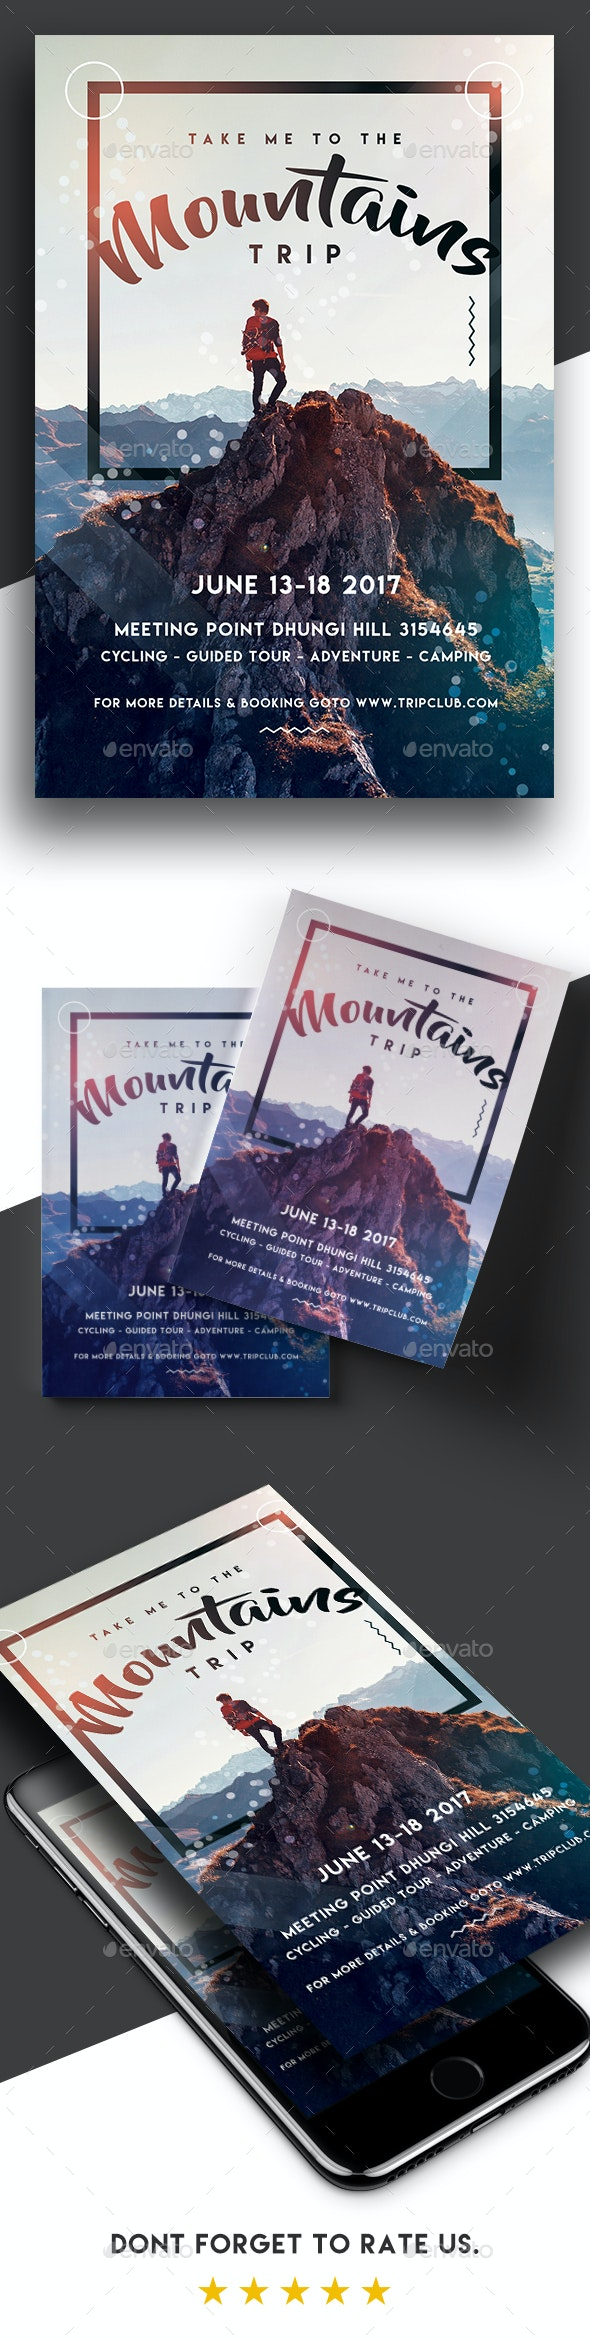 Take Me To The Mountains - Trip Flyer - Holidays Events